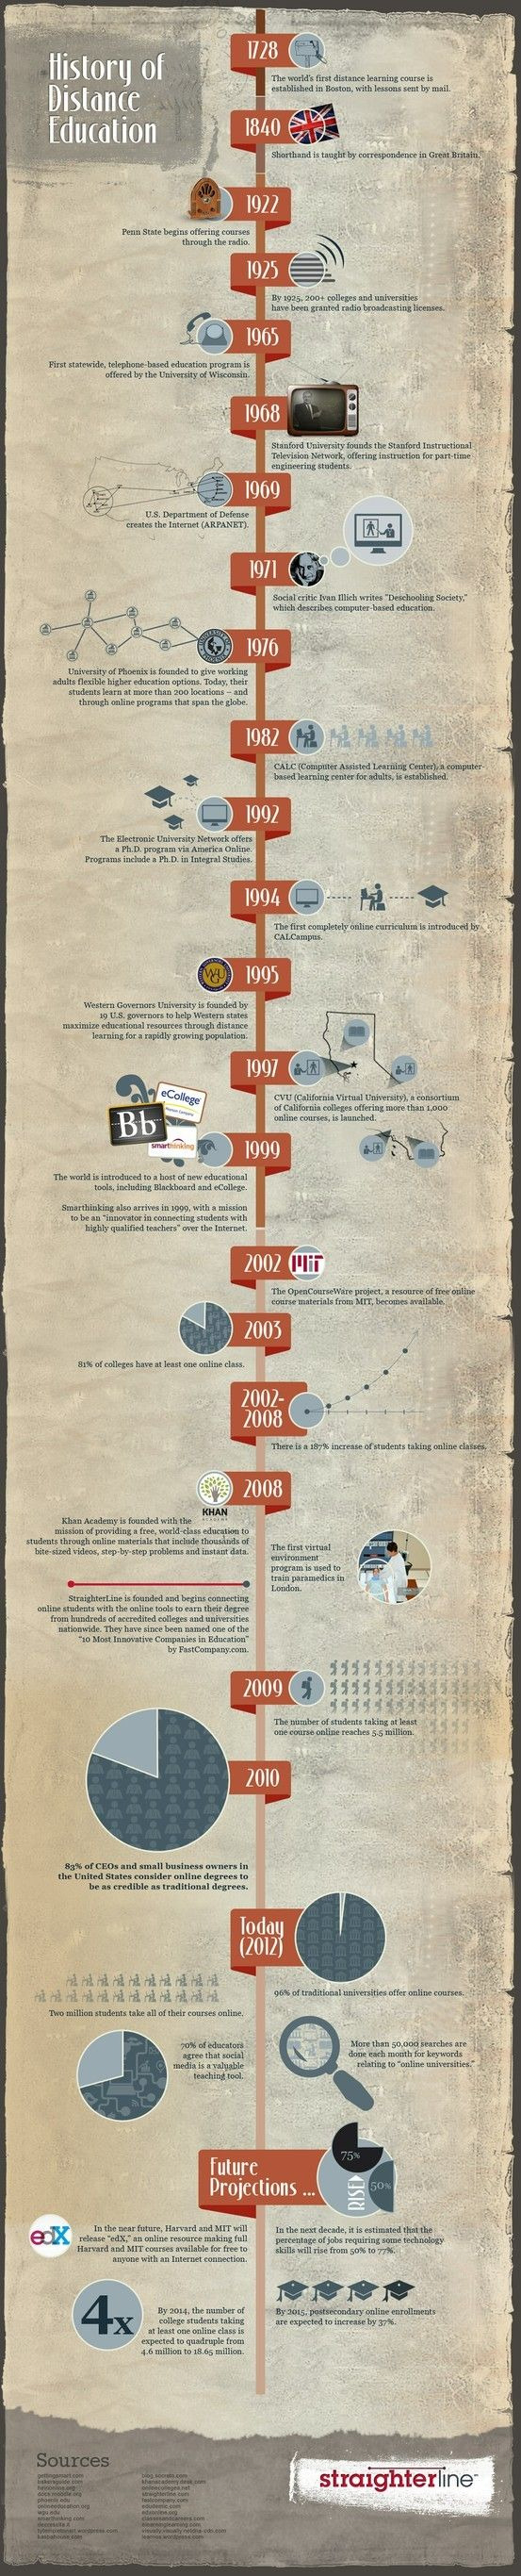 The History of Distance Education #infographic #education #distanceeducation